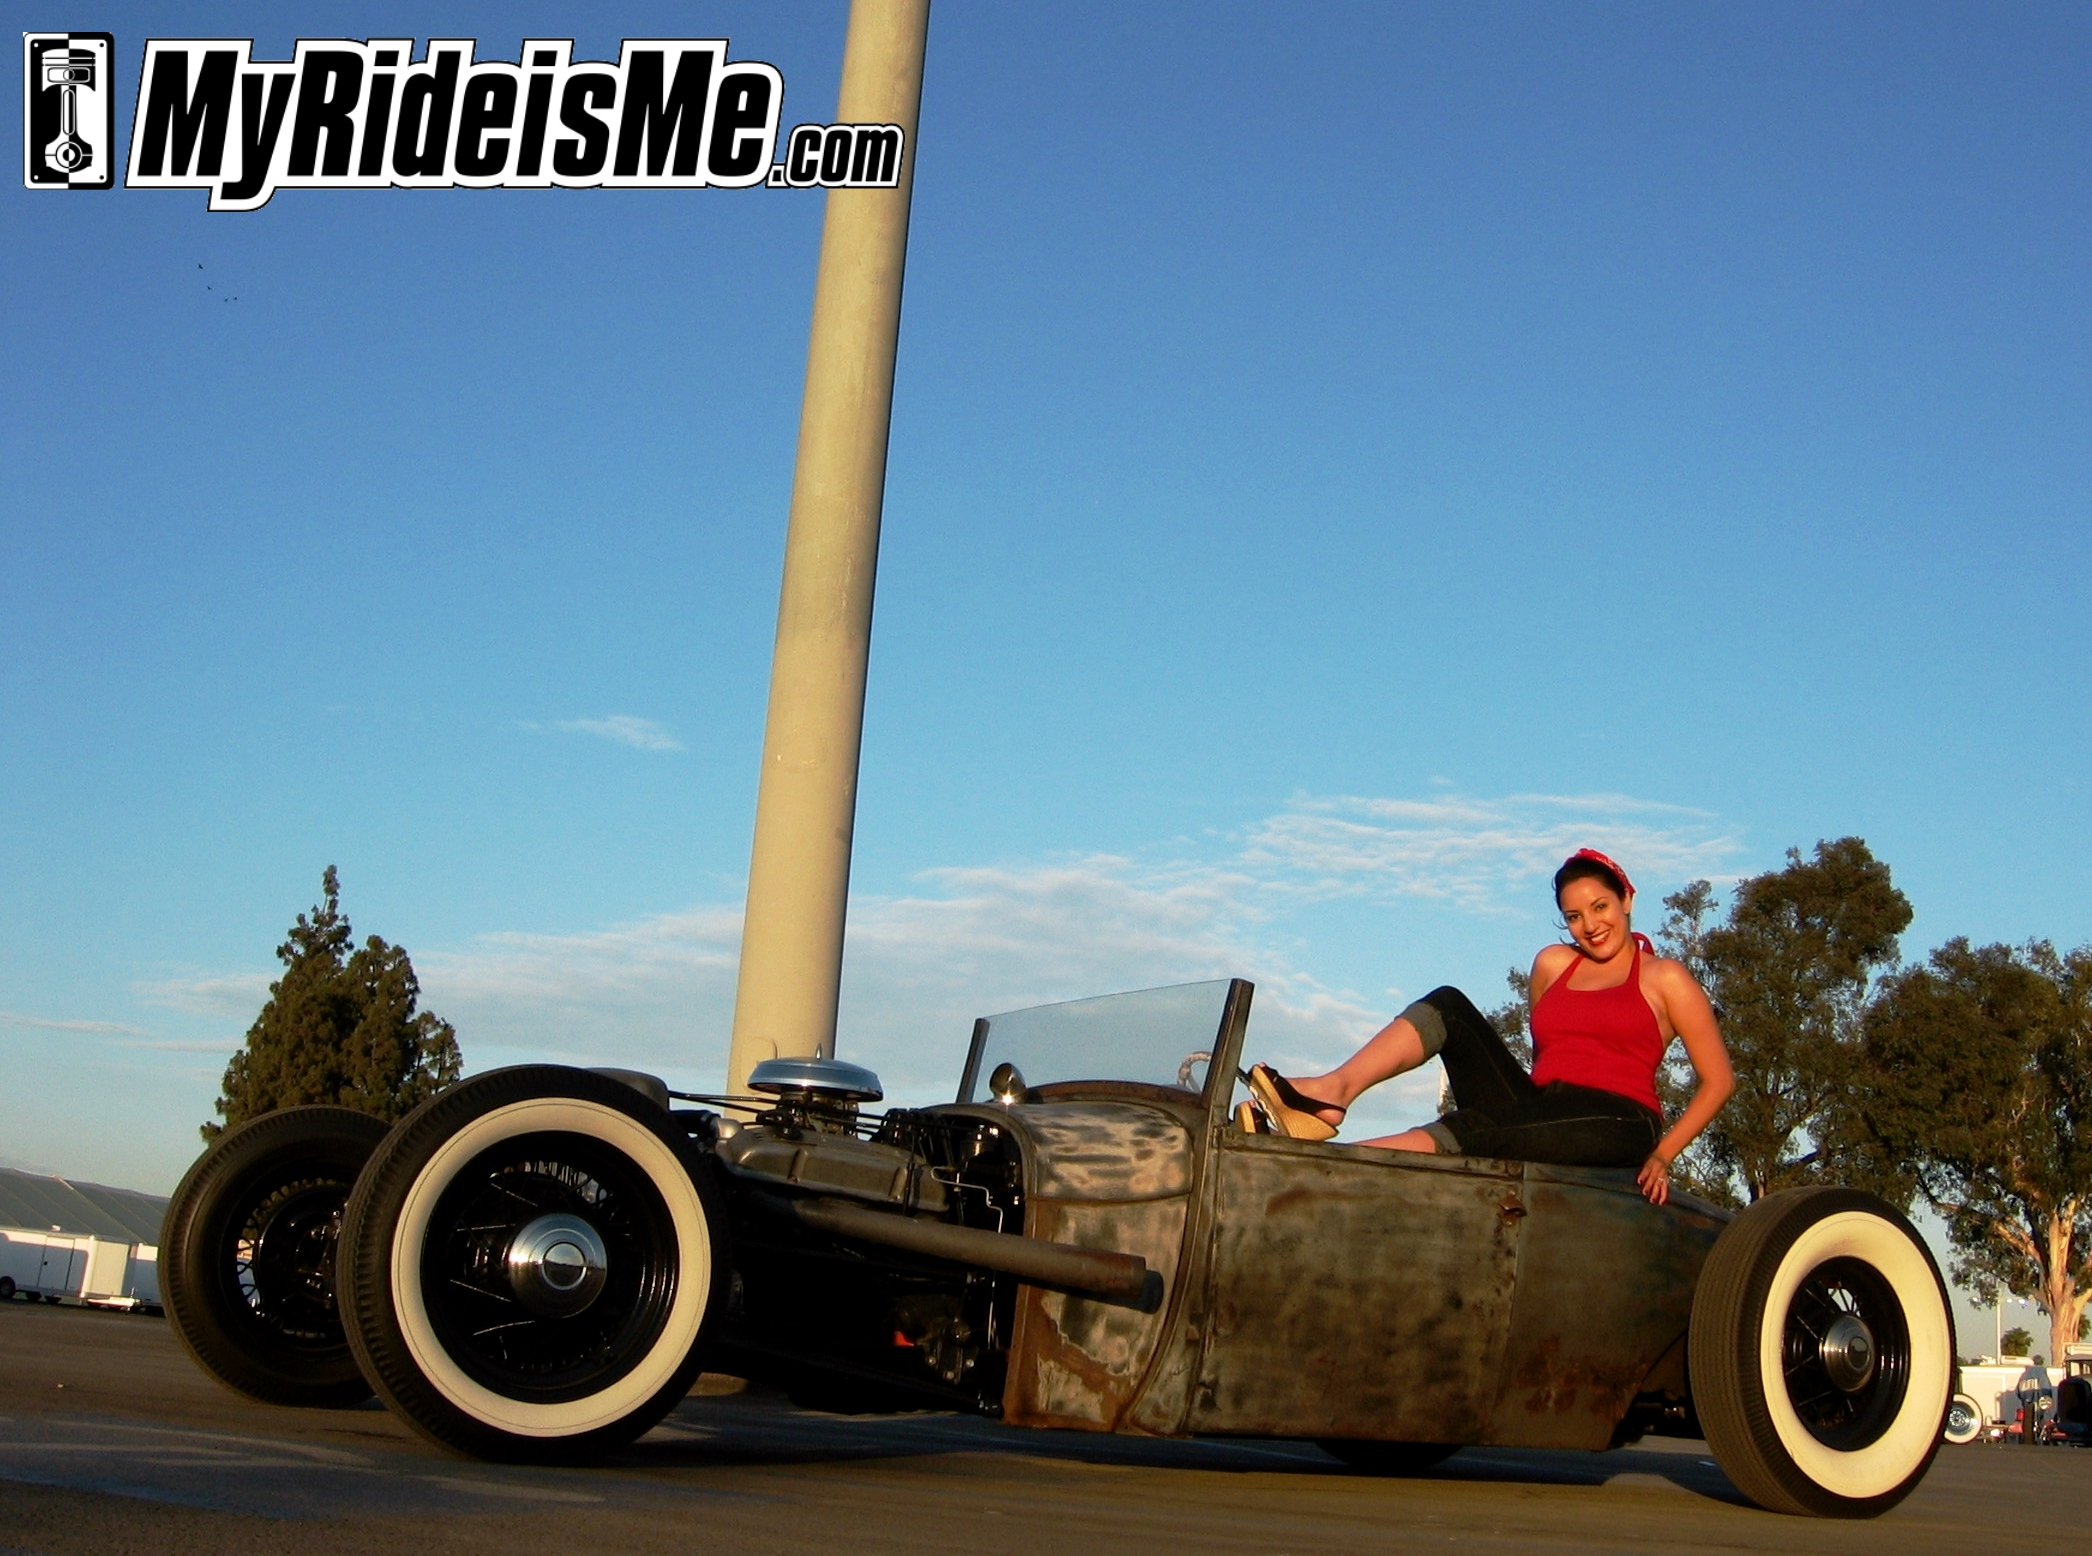 Pinup models go with Hot Rods